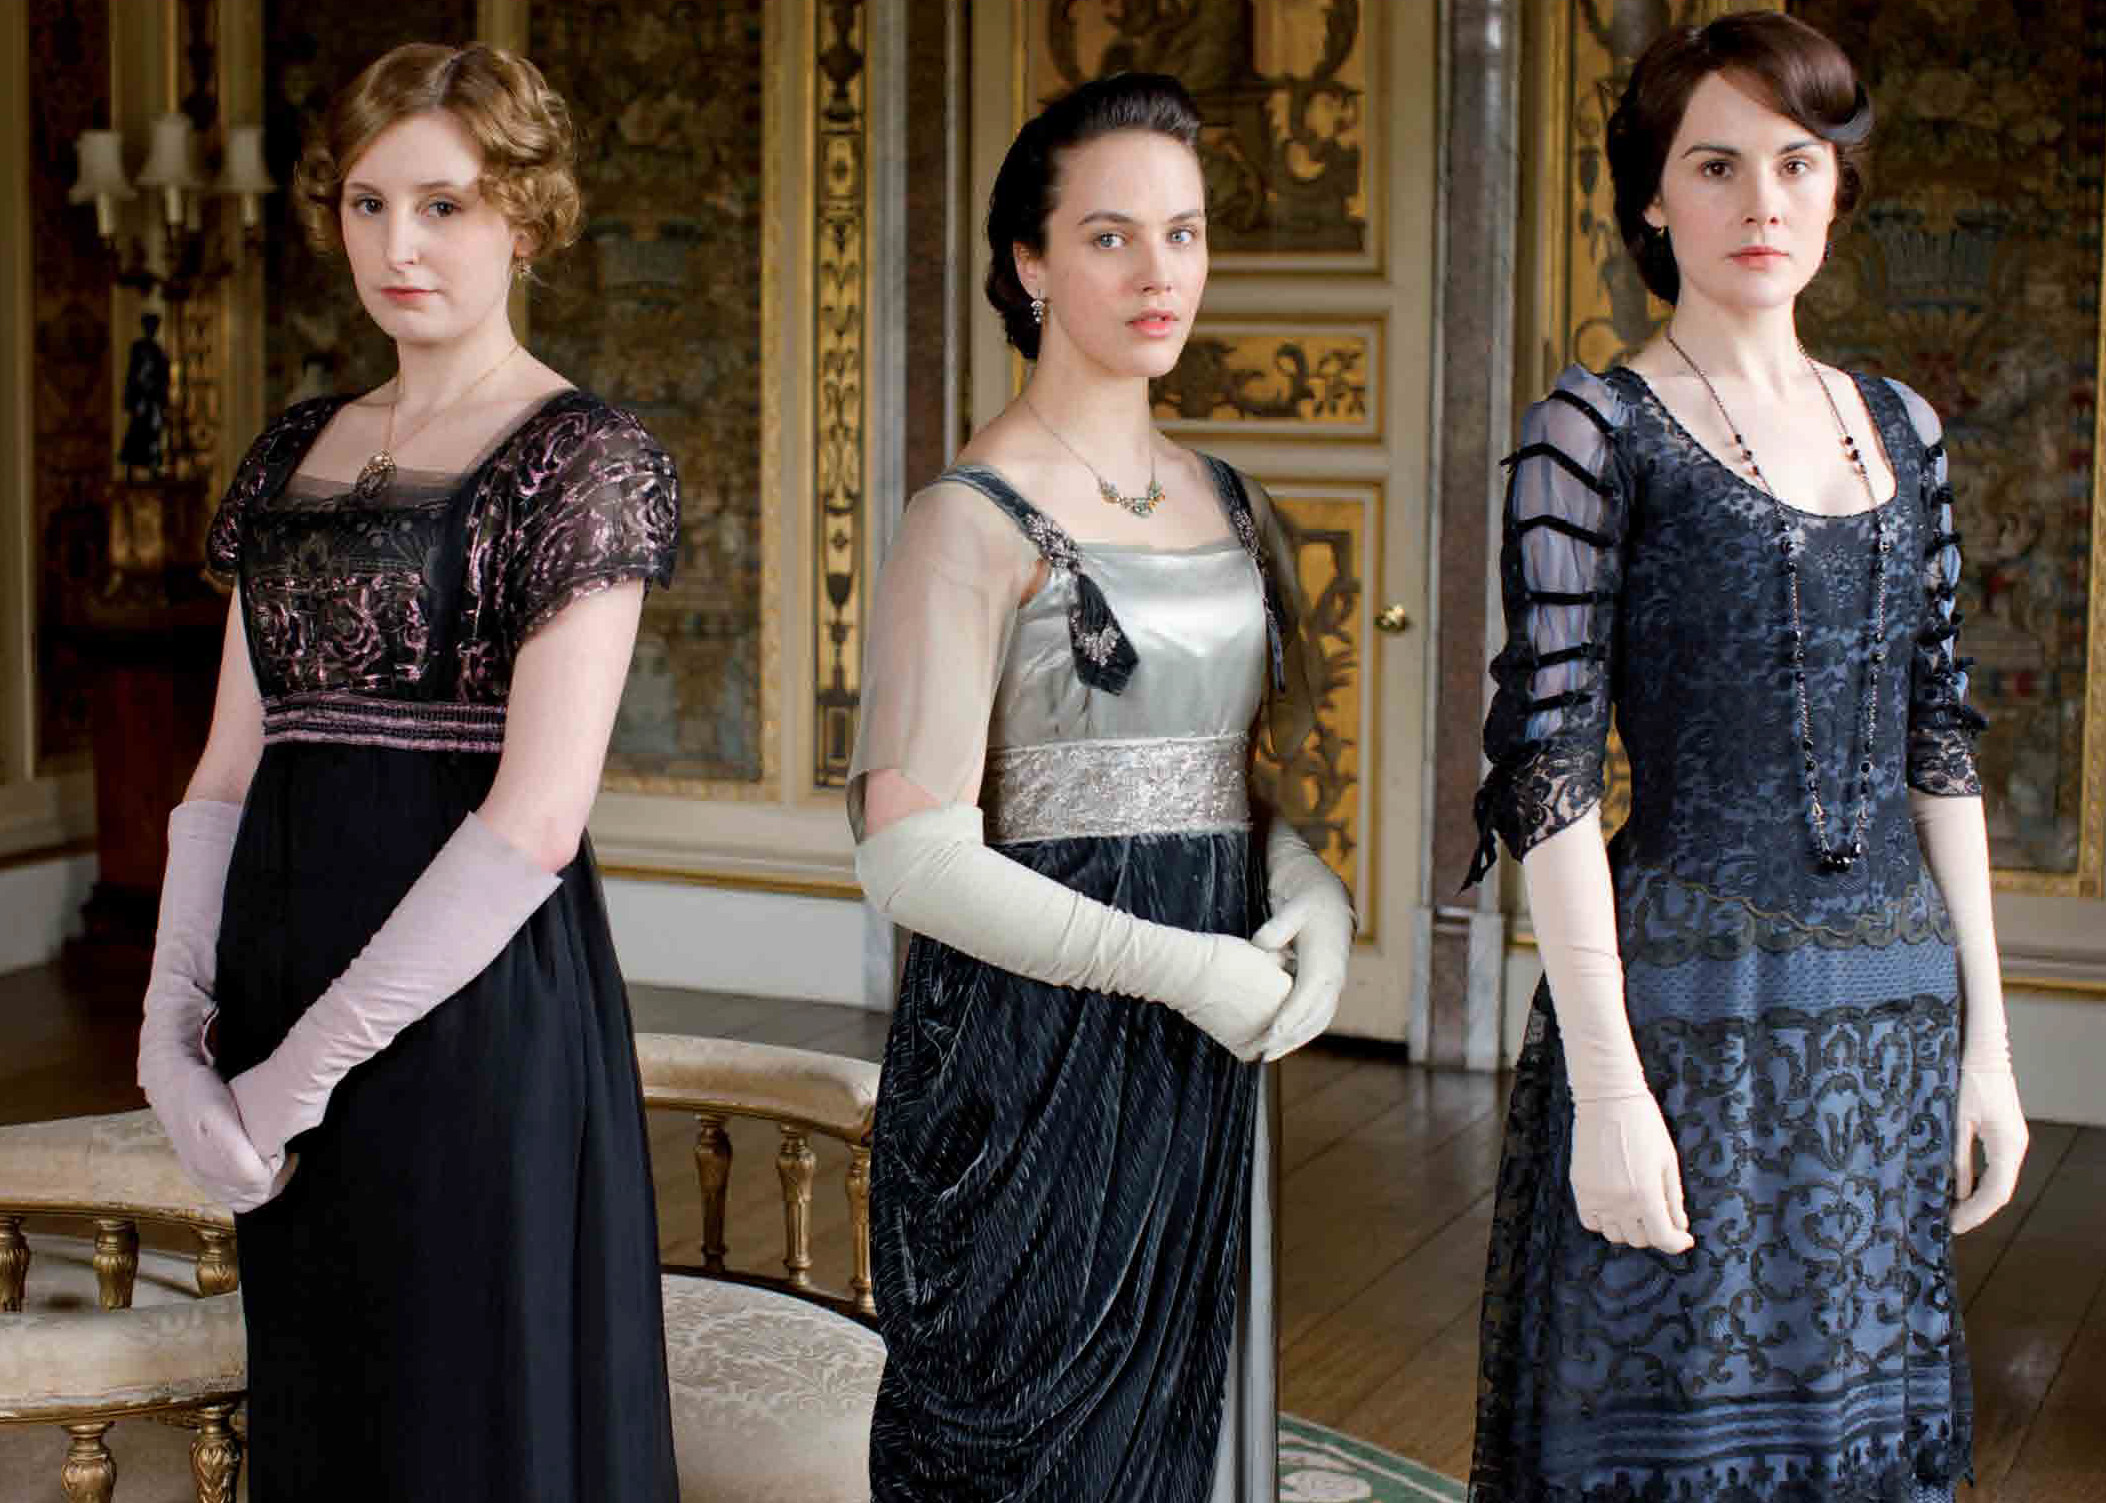 Downton Abbey Season 2 - Downton Abbey Photo (31759388) - Fanpop